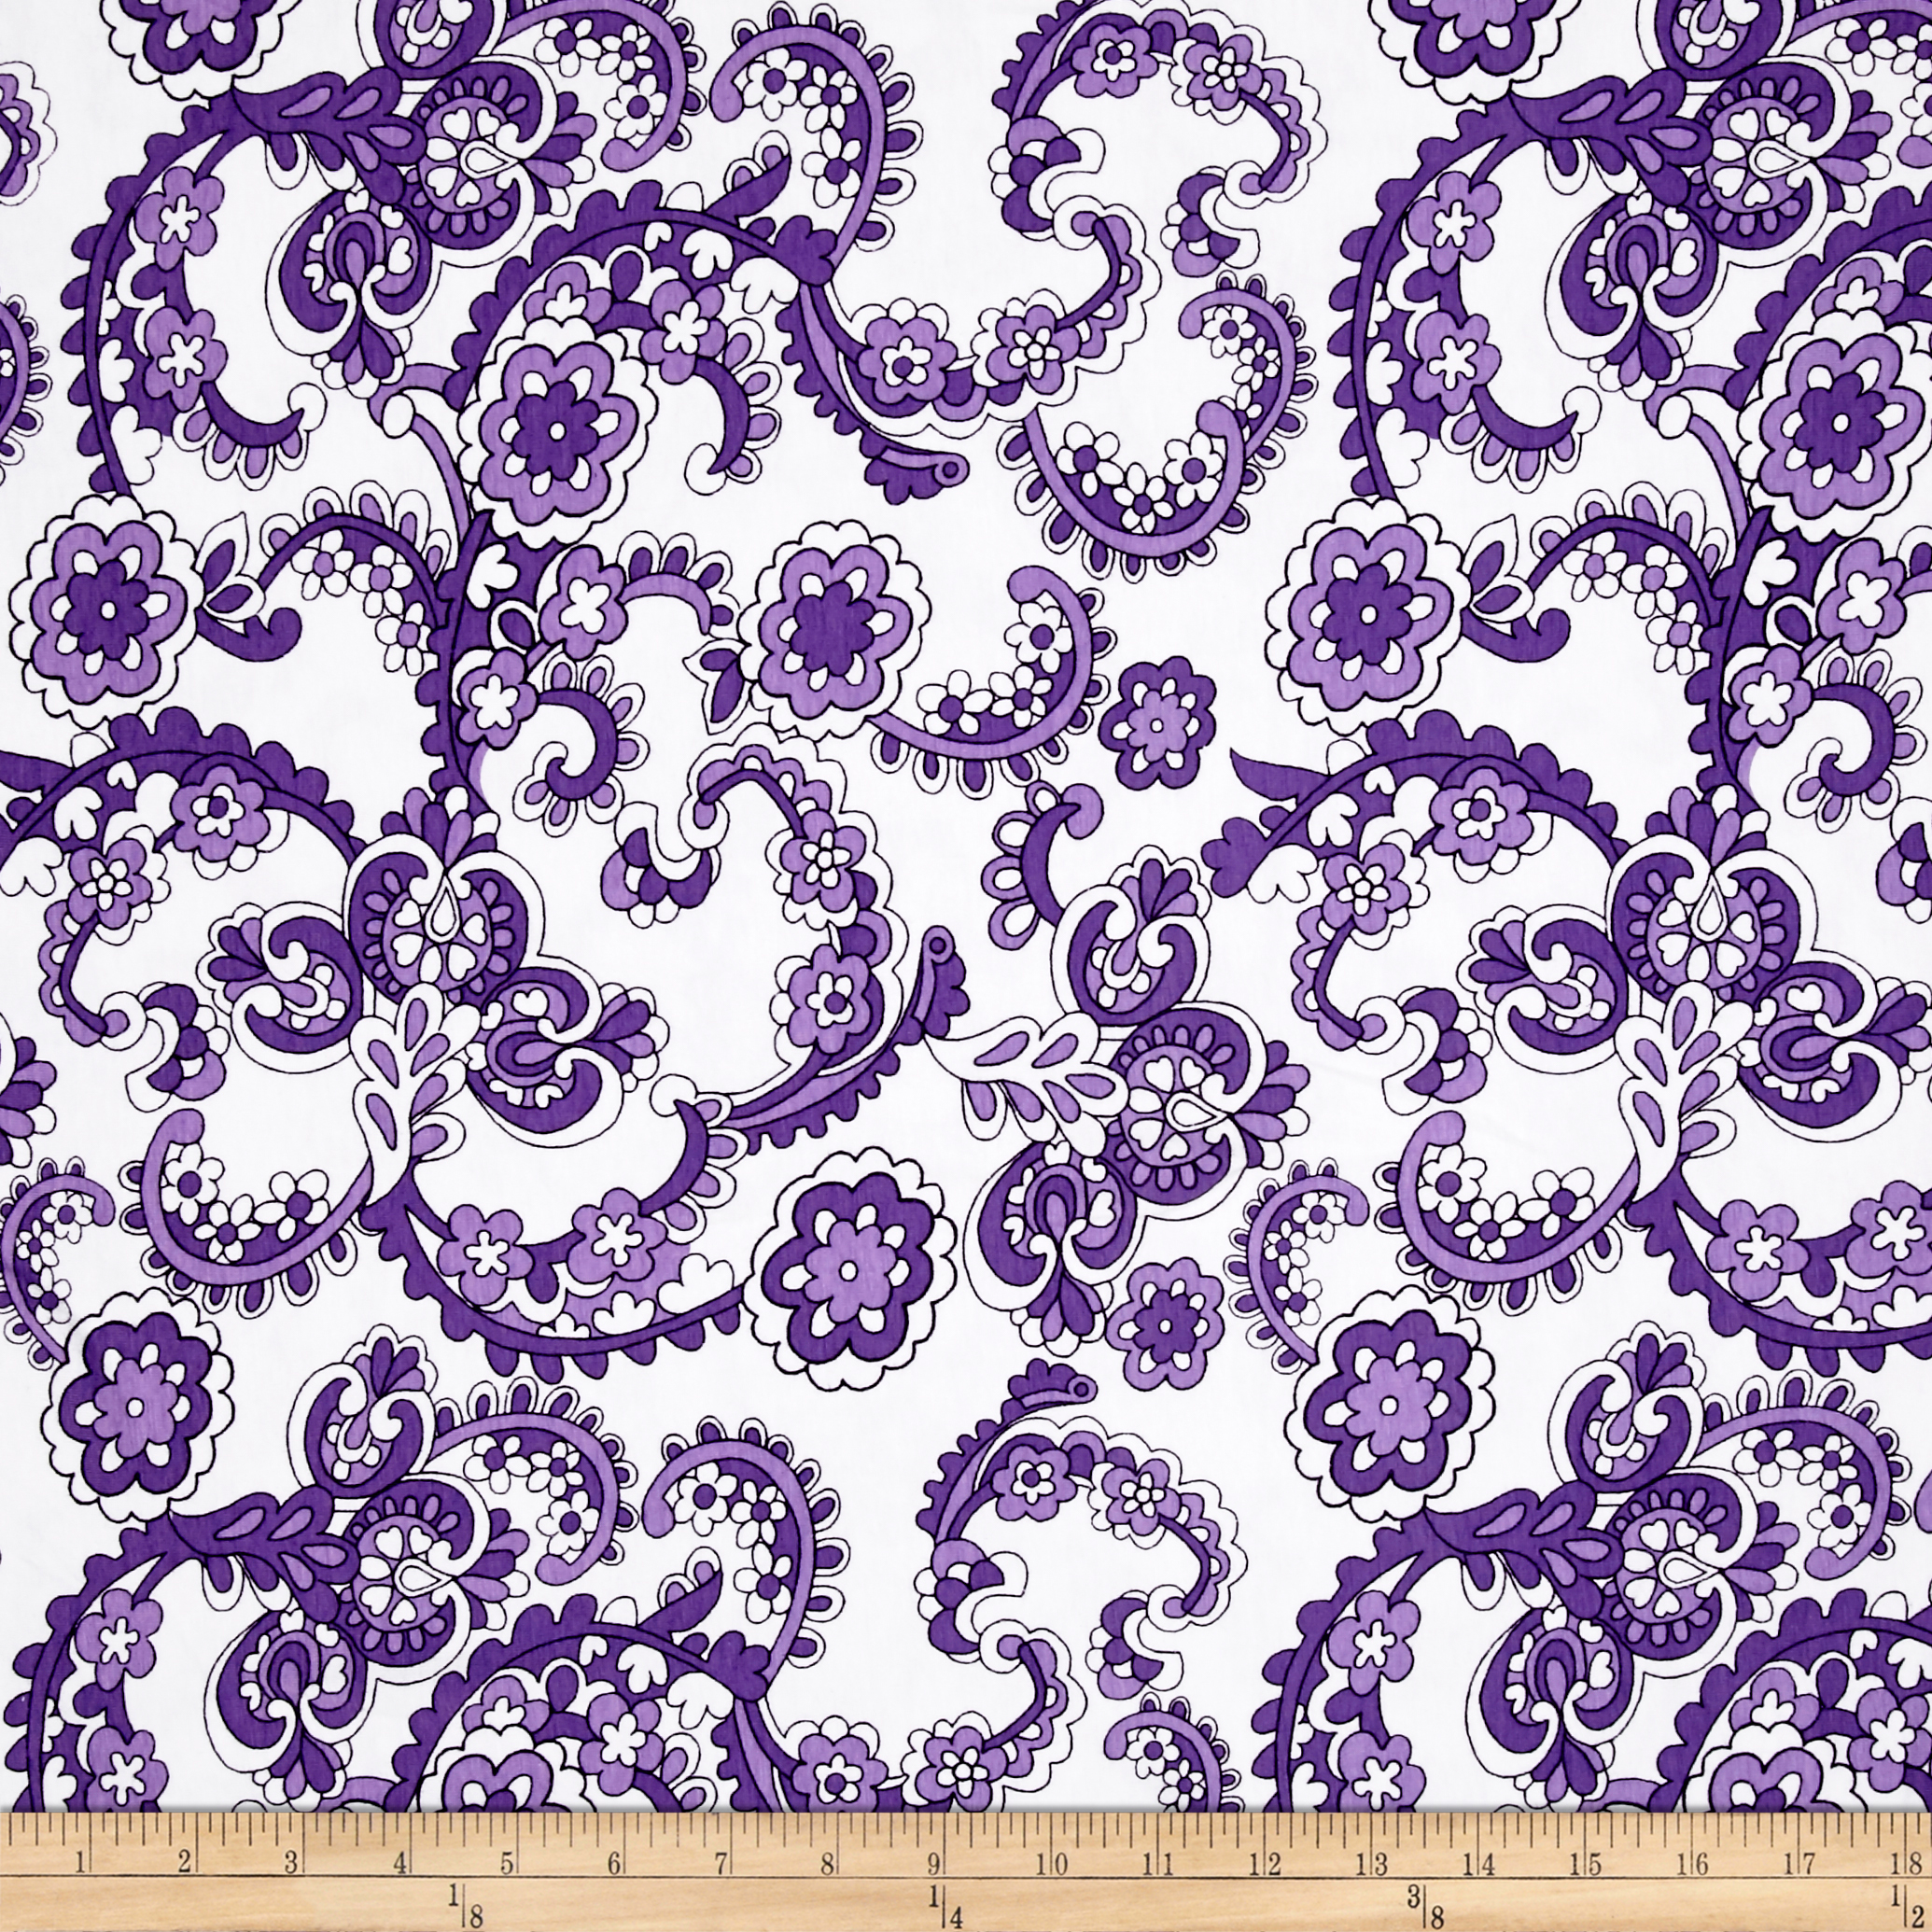 Jersey Knit Floral Paisley Lavender Fabric by E. E. Schenck in USA